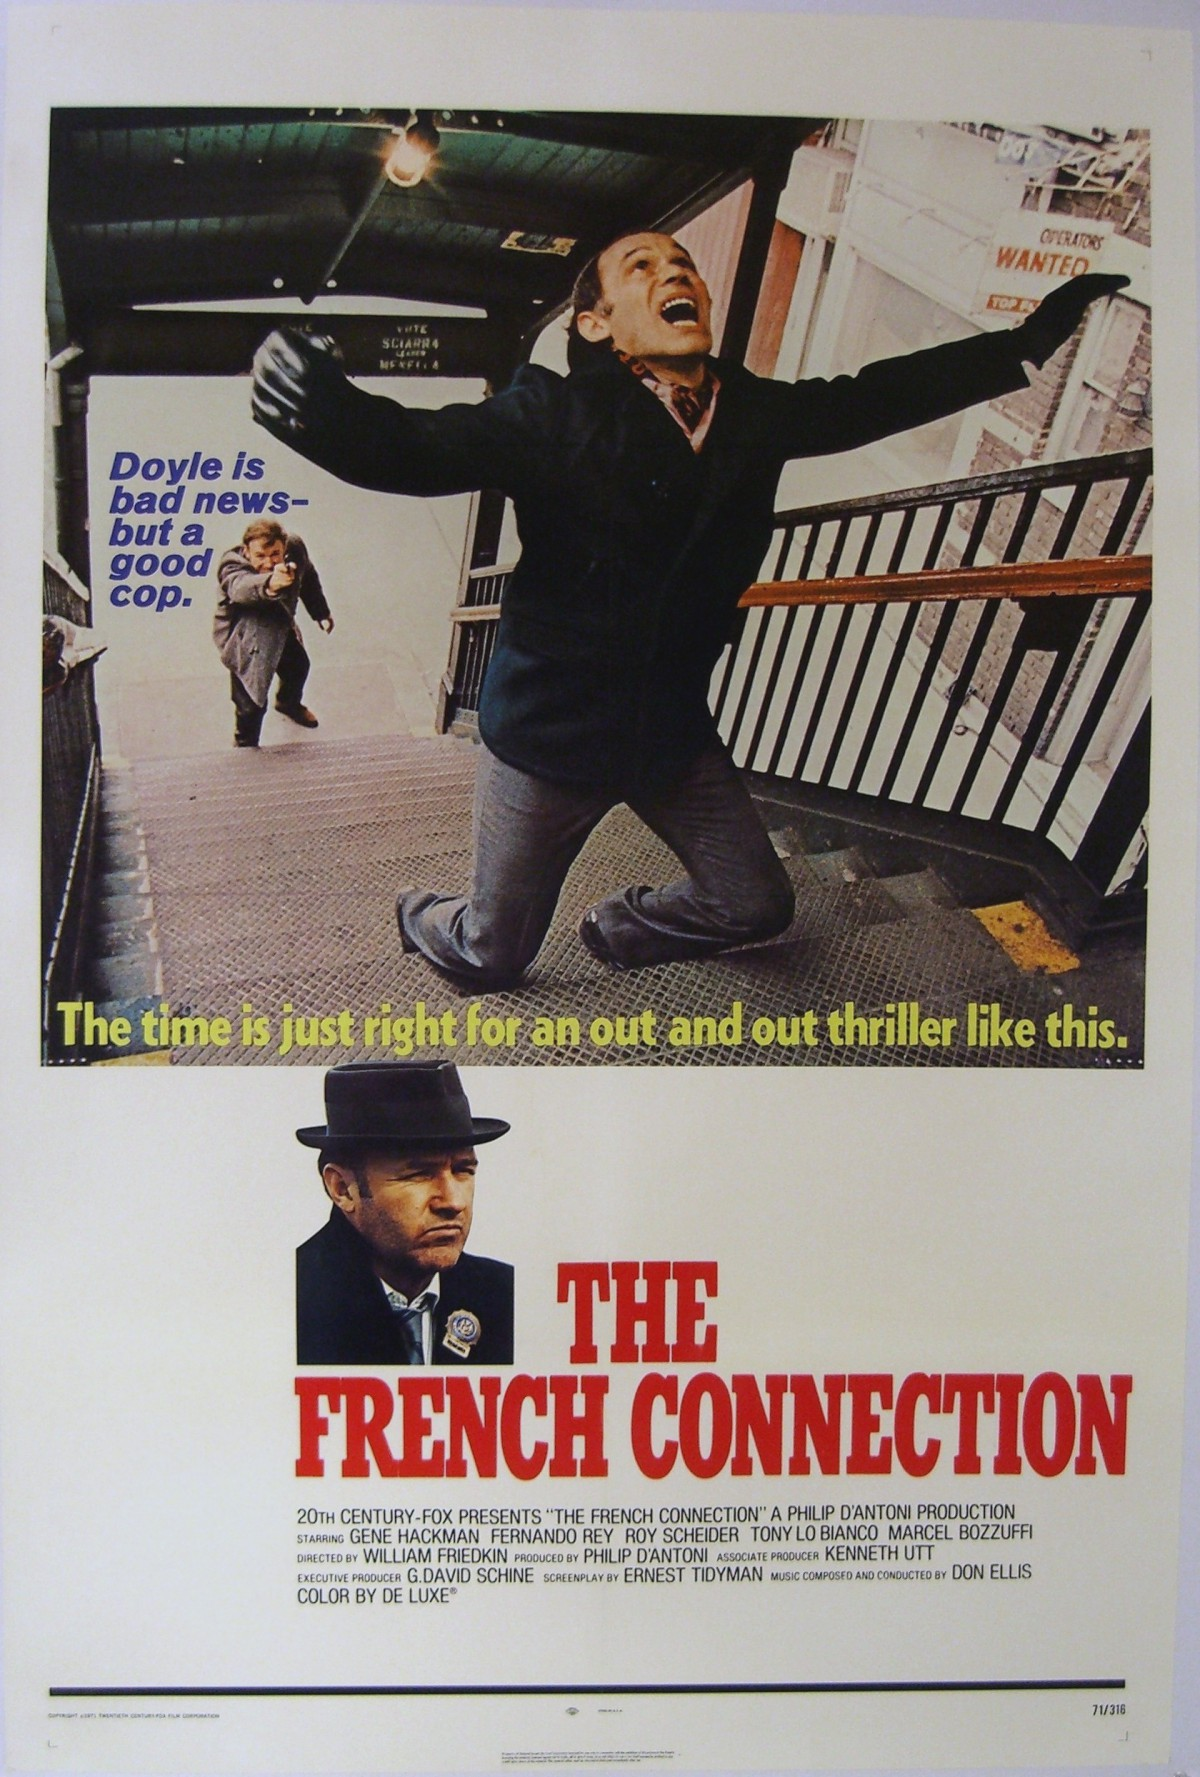 88. The French Connection (1971)